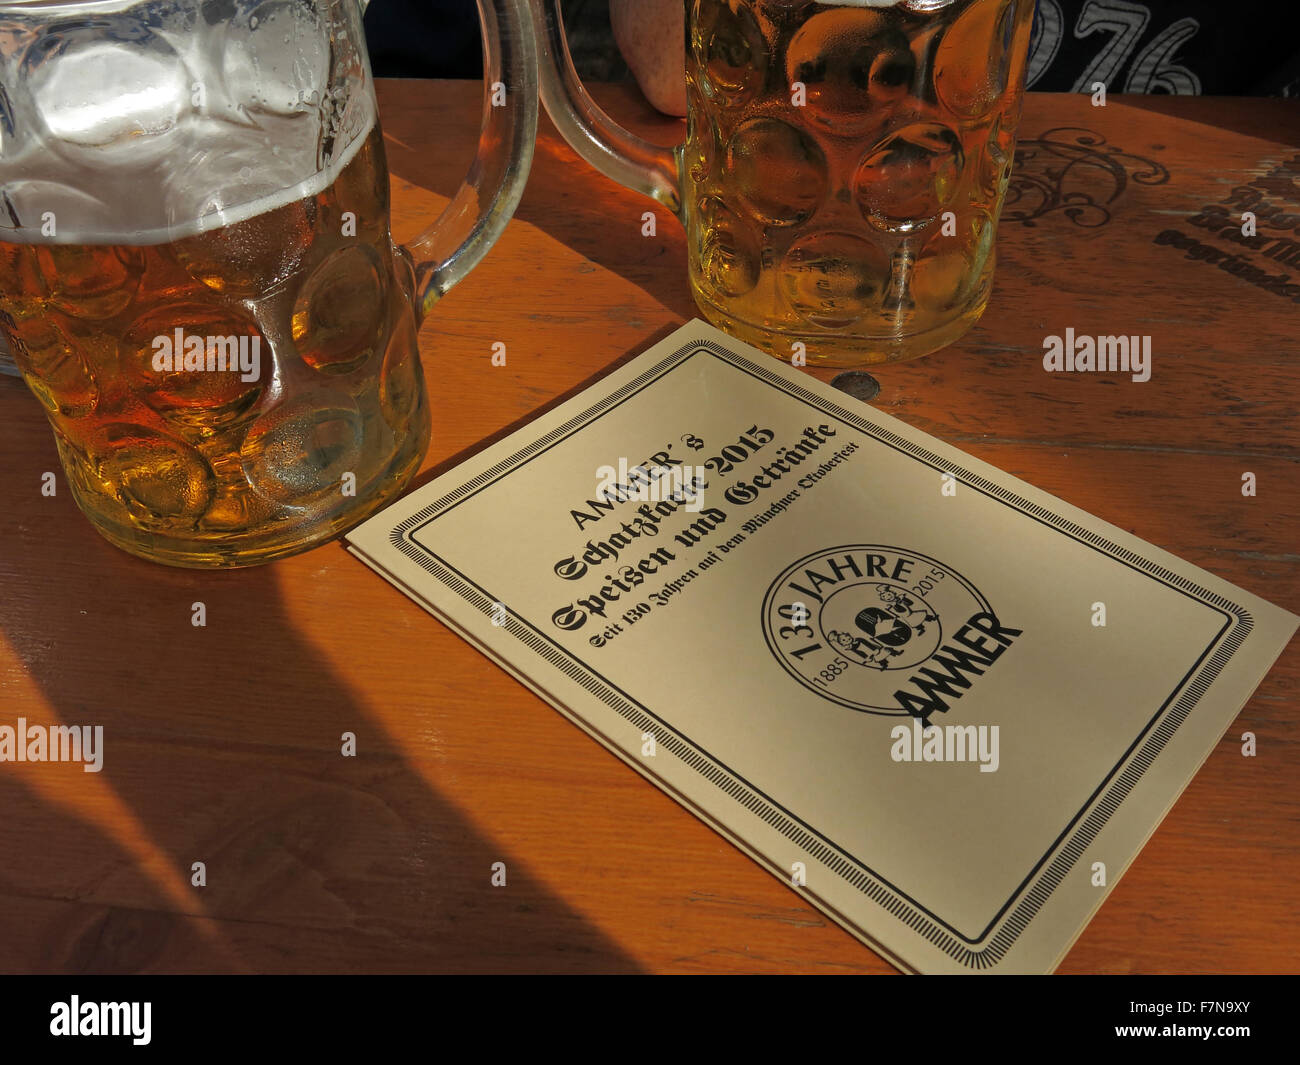 Bavaria,Munich,Germany,with,liter,stein,of,beer,beir,Octoberfest,wood,wooden,stain,brand,beer,bier,beir,glass,1328,jw,gegrunder 1328,mat,beermat,advertising,alcohol,bar,bars,bavarian,beer,brew,brewery,lager,lagers,pils,liter,litre,surface,Munich,Bavaria,augustiner brau,Gegrunder 1328,GoTonySmith,ale,ammer,autumn,bavaria,beer,beer festival,beer garden,bier,blaukraut,bread,brezen,bright,building,buildings,buy images of,buy pictures of,center,centre,chicken,dirndl,dumplings,enjoyment,event,fairgrounds,festival,field,fun,funfair,garden,garten,germany,gotonysmith,happy,in,kndel,ksesptzle,lederhosen,meadow,munchen,munich,munich octoberfest,munich oktoberfest,october,octoberfest,oktoberfest,oktoberfest beer,pancake,pork,potato,pretzels,reiberdatschi,roast,rotkohl,sauerkraut,scenes,sennerhut,sunny,table,tables,tent,therese,theresienwiese,ticket,tickets,tourism,tourist,tourists,tradition,traditional,travelling,tree,trees,unity day,volksfest,wiesn,Buy Pictures of,Buy Images Of